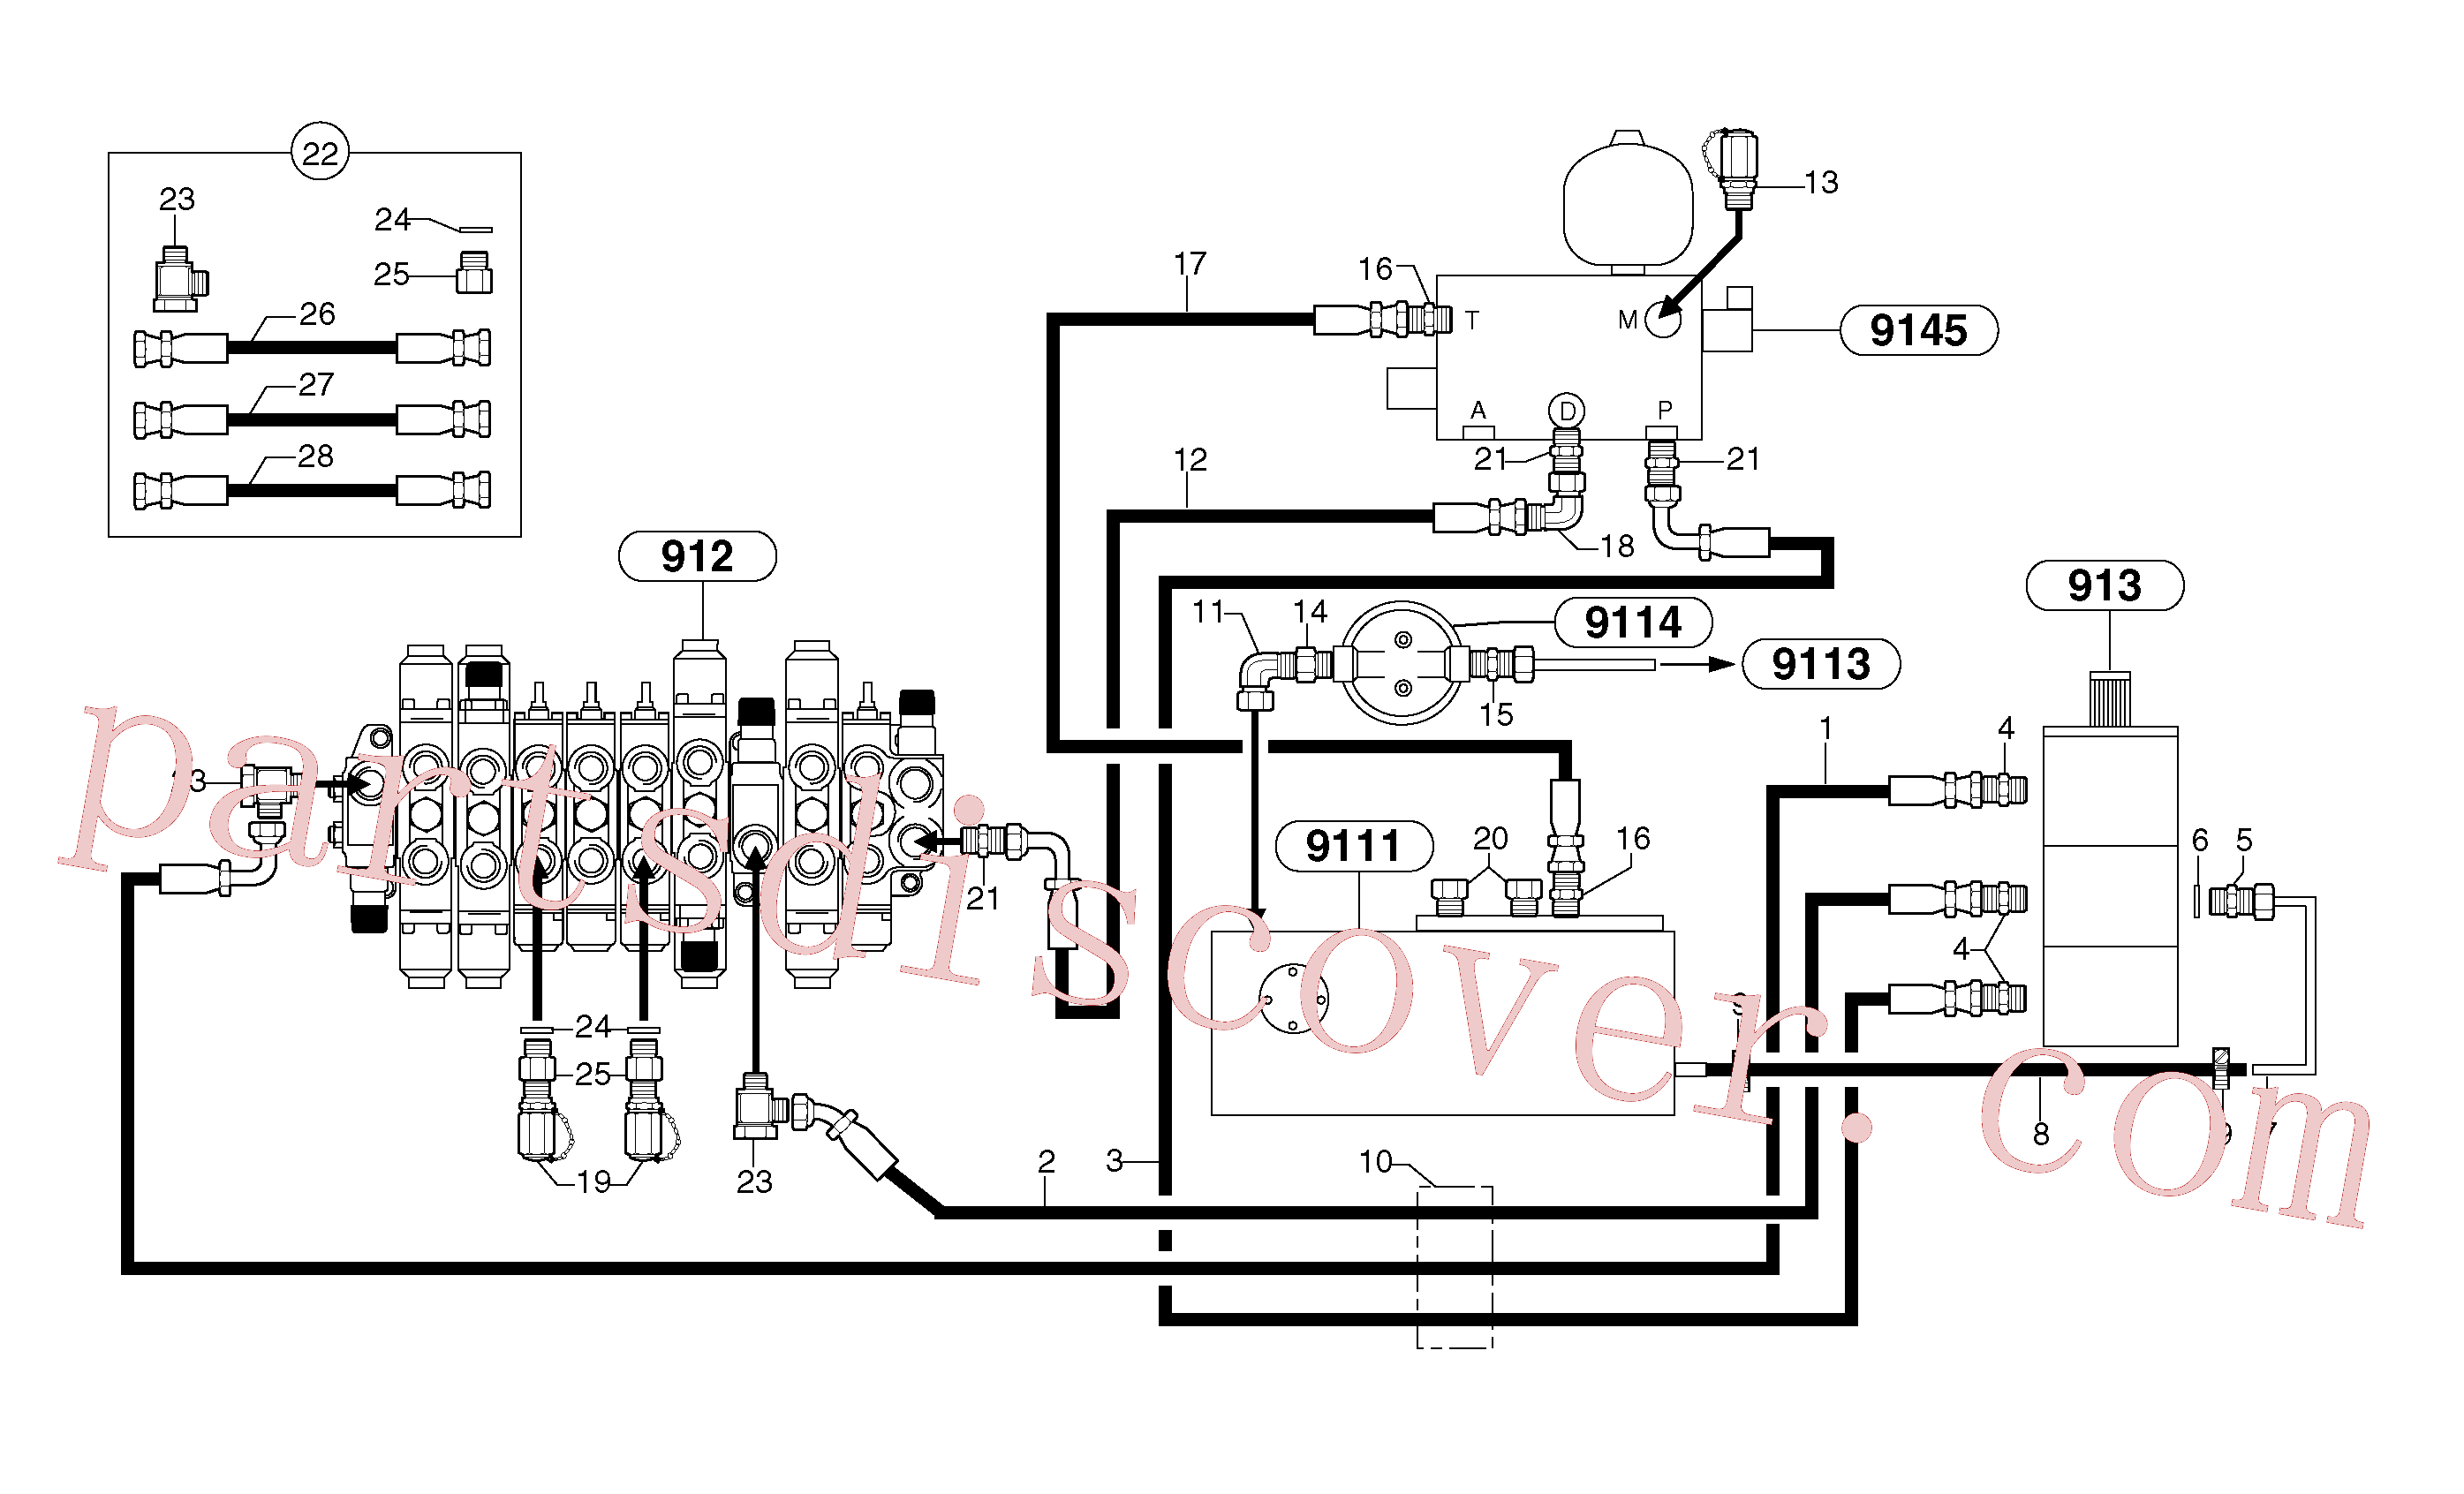 PJ4192441 for Volvo Attachments supply and return circuit(9112X1 assembly)